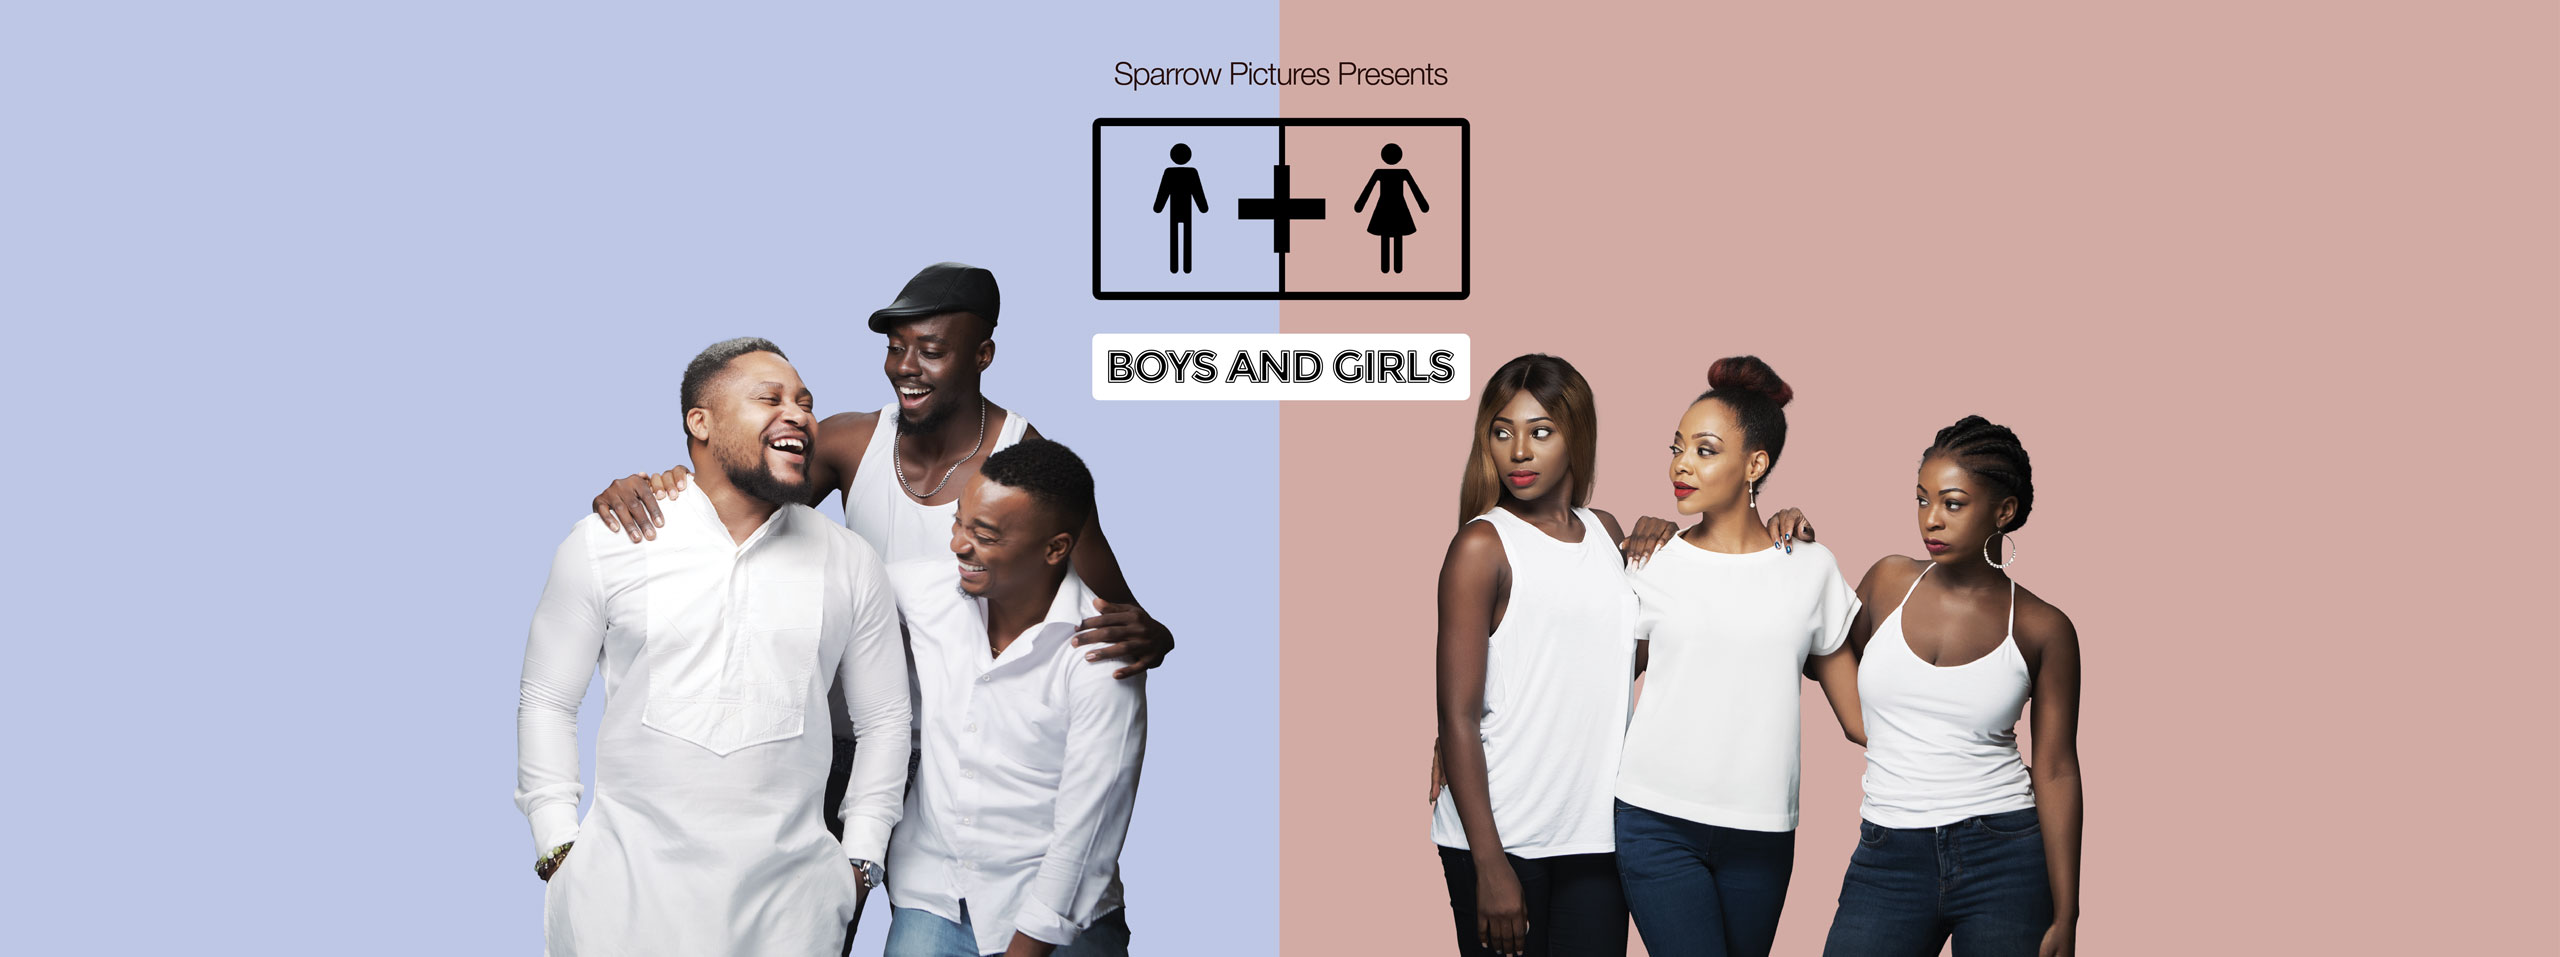 poster of a title that's coming soon: Boys and Girls